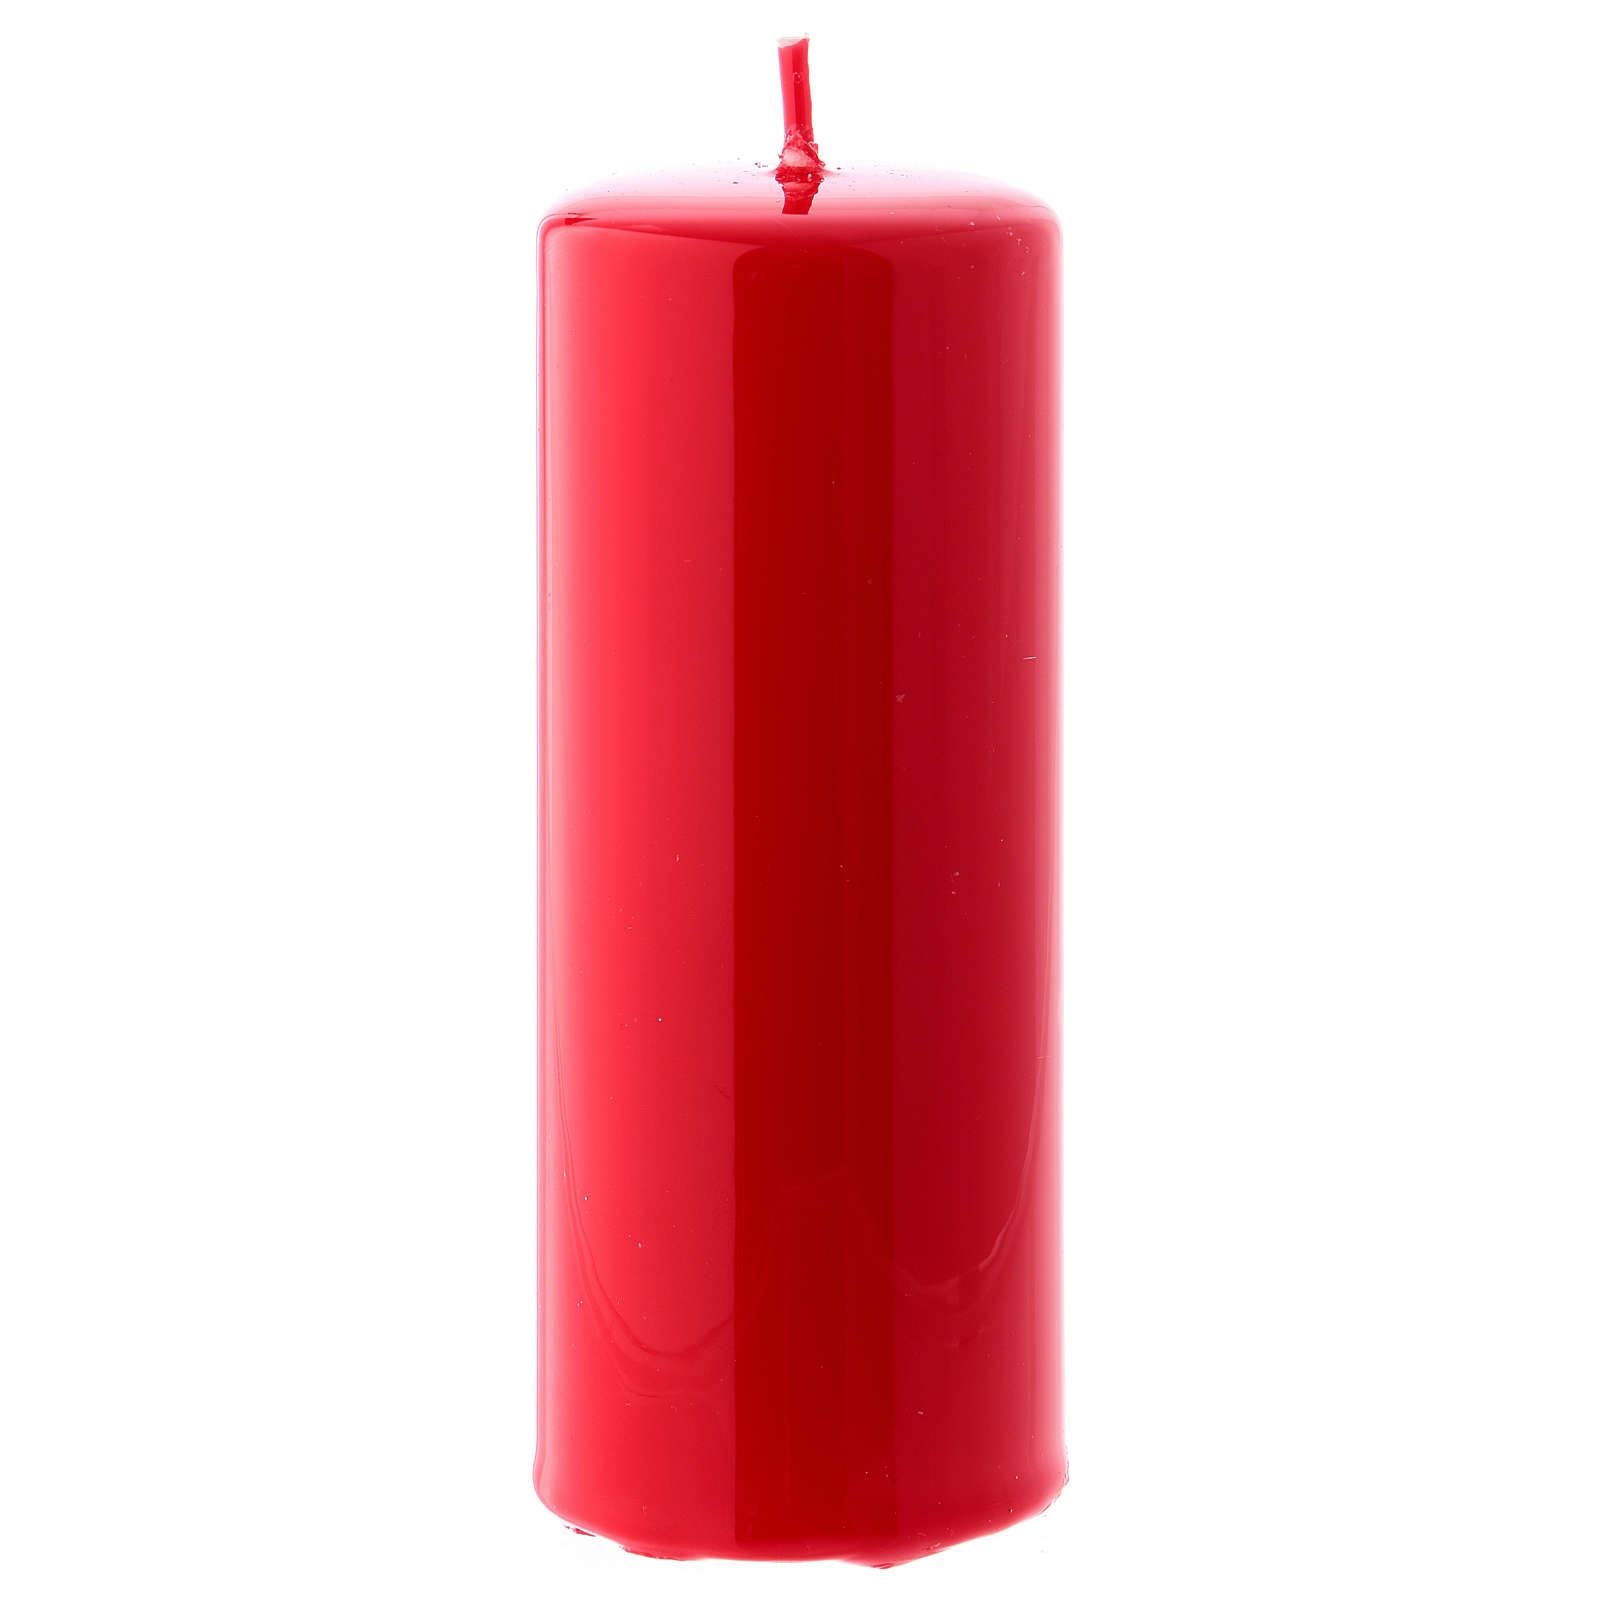 Ceralacca red wax candle 5x13 cm 3